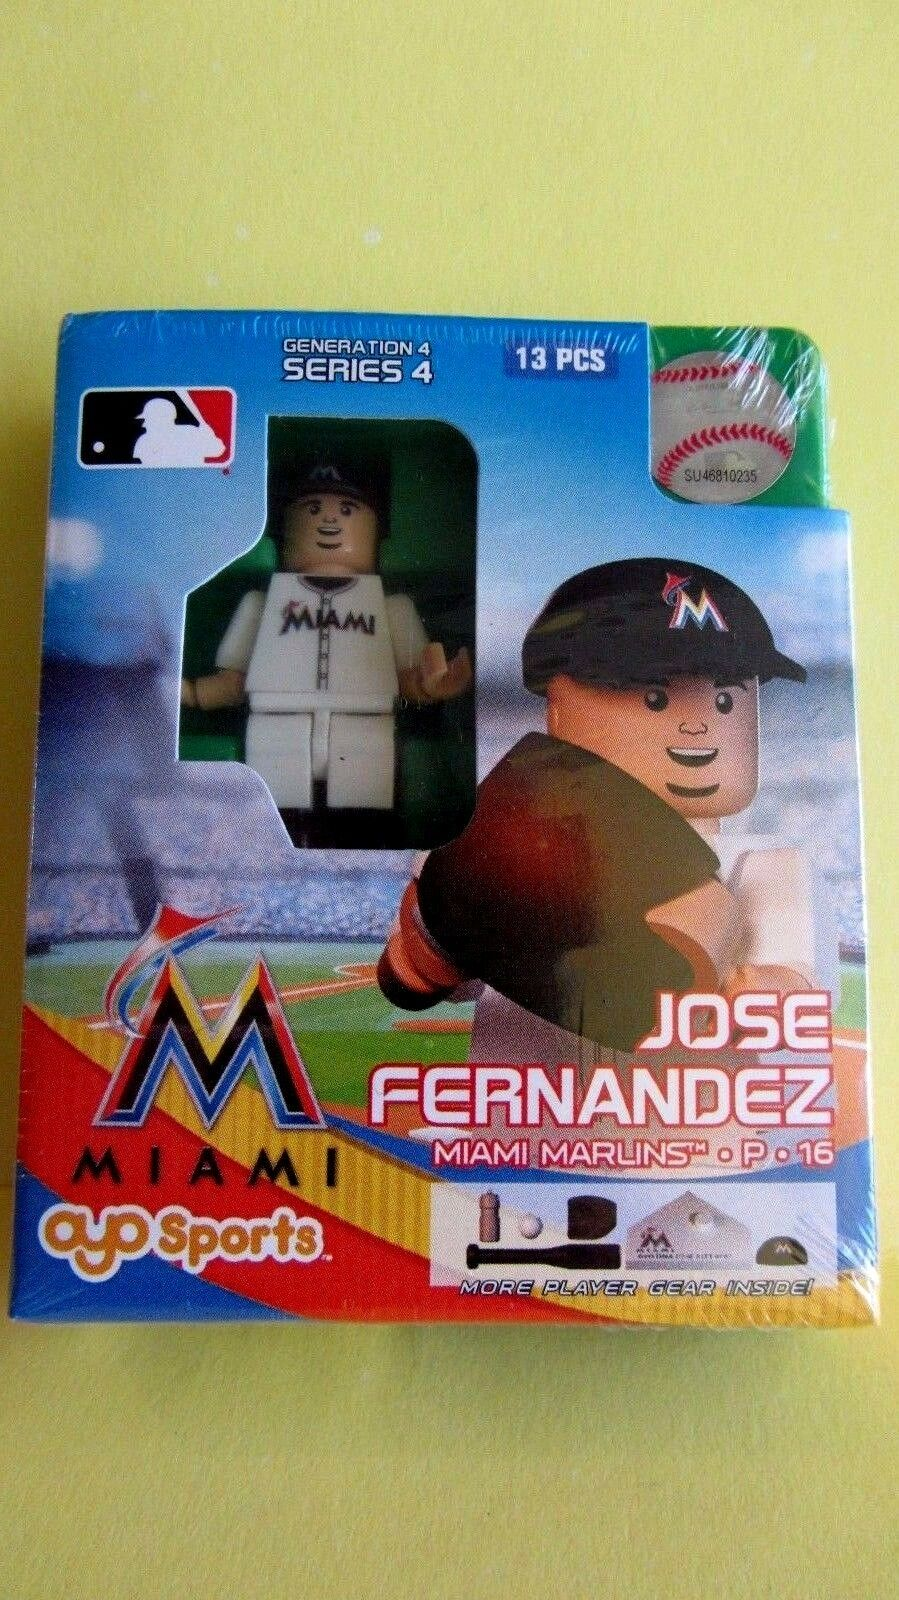 BRAND NEW OYO SPORTS MARLINS JOSE FERNANDEZ MINI FIGURE SERIES 4 COLLECTIBLE